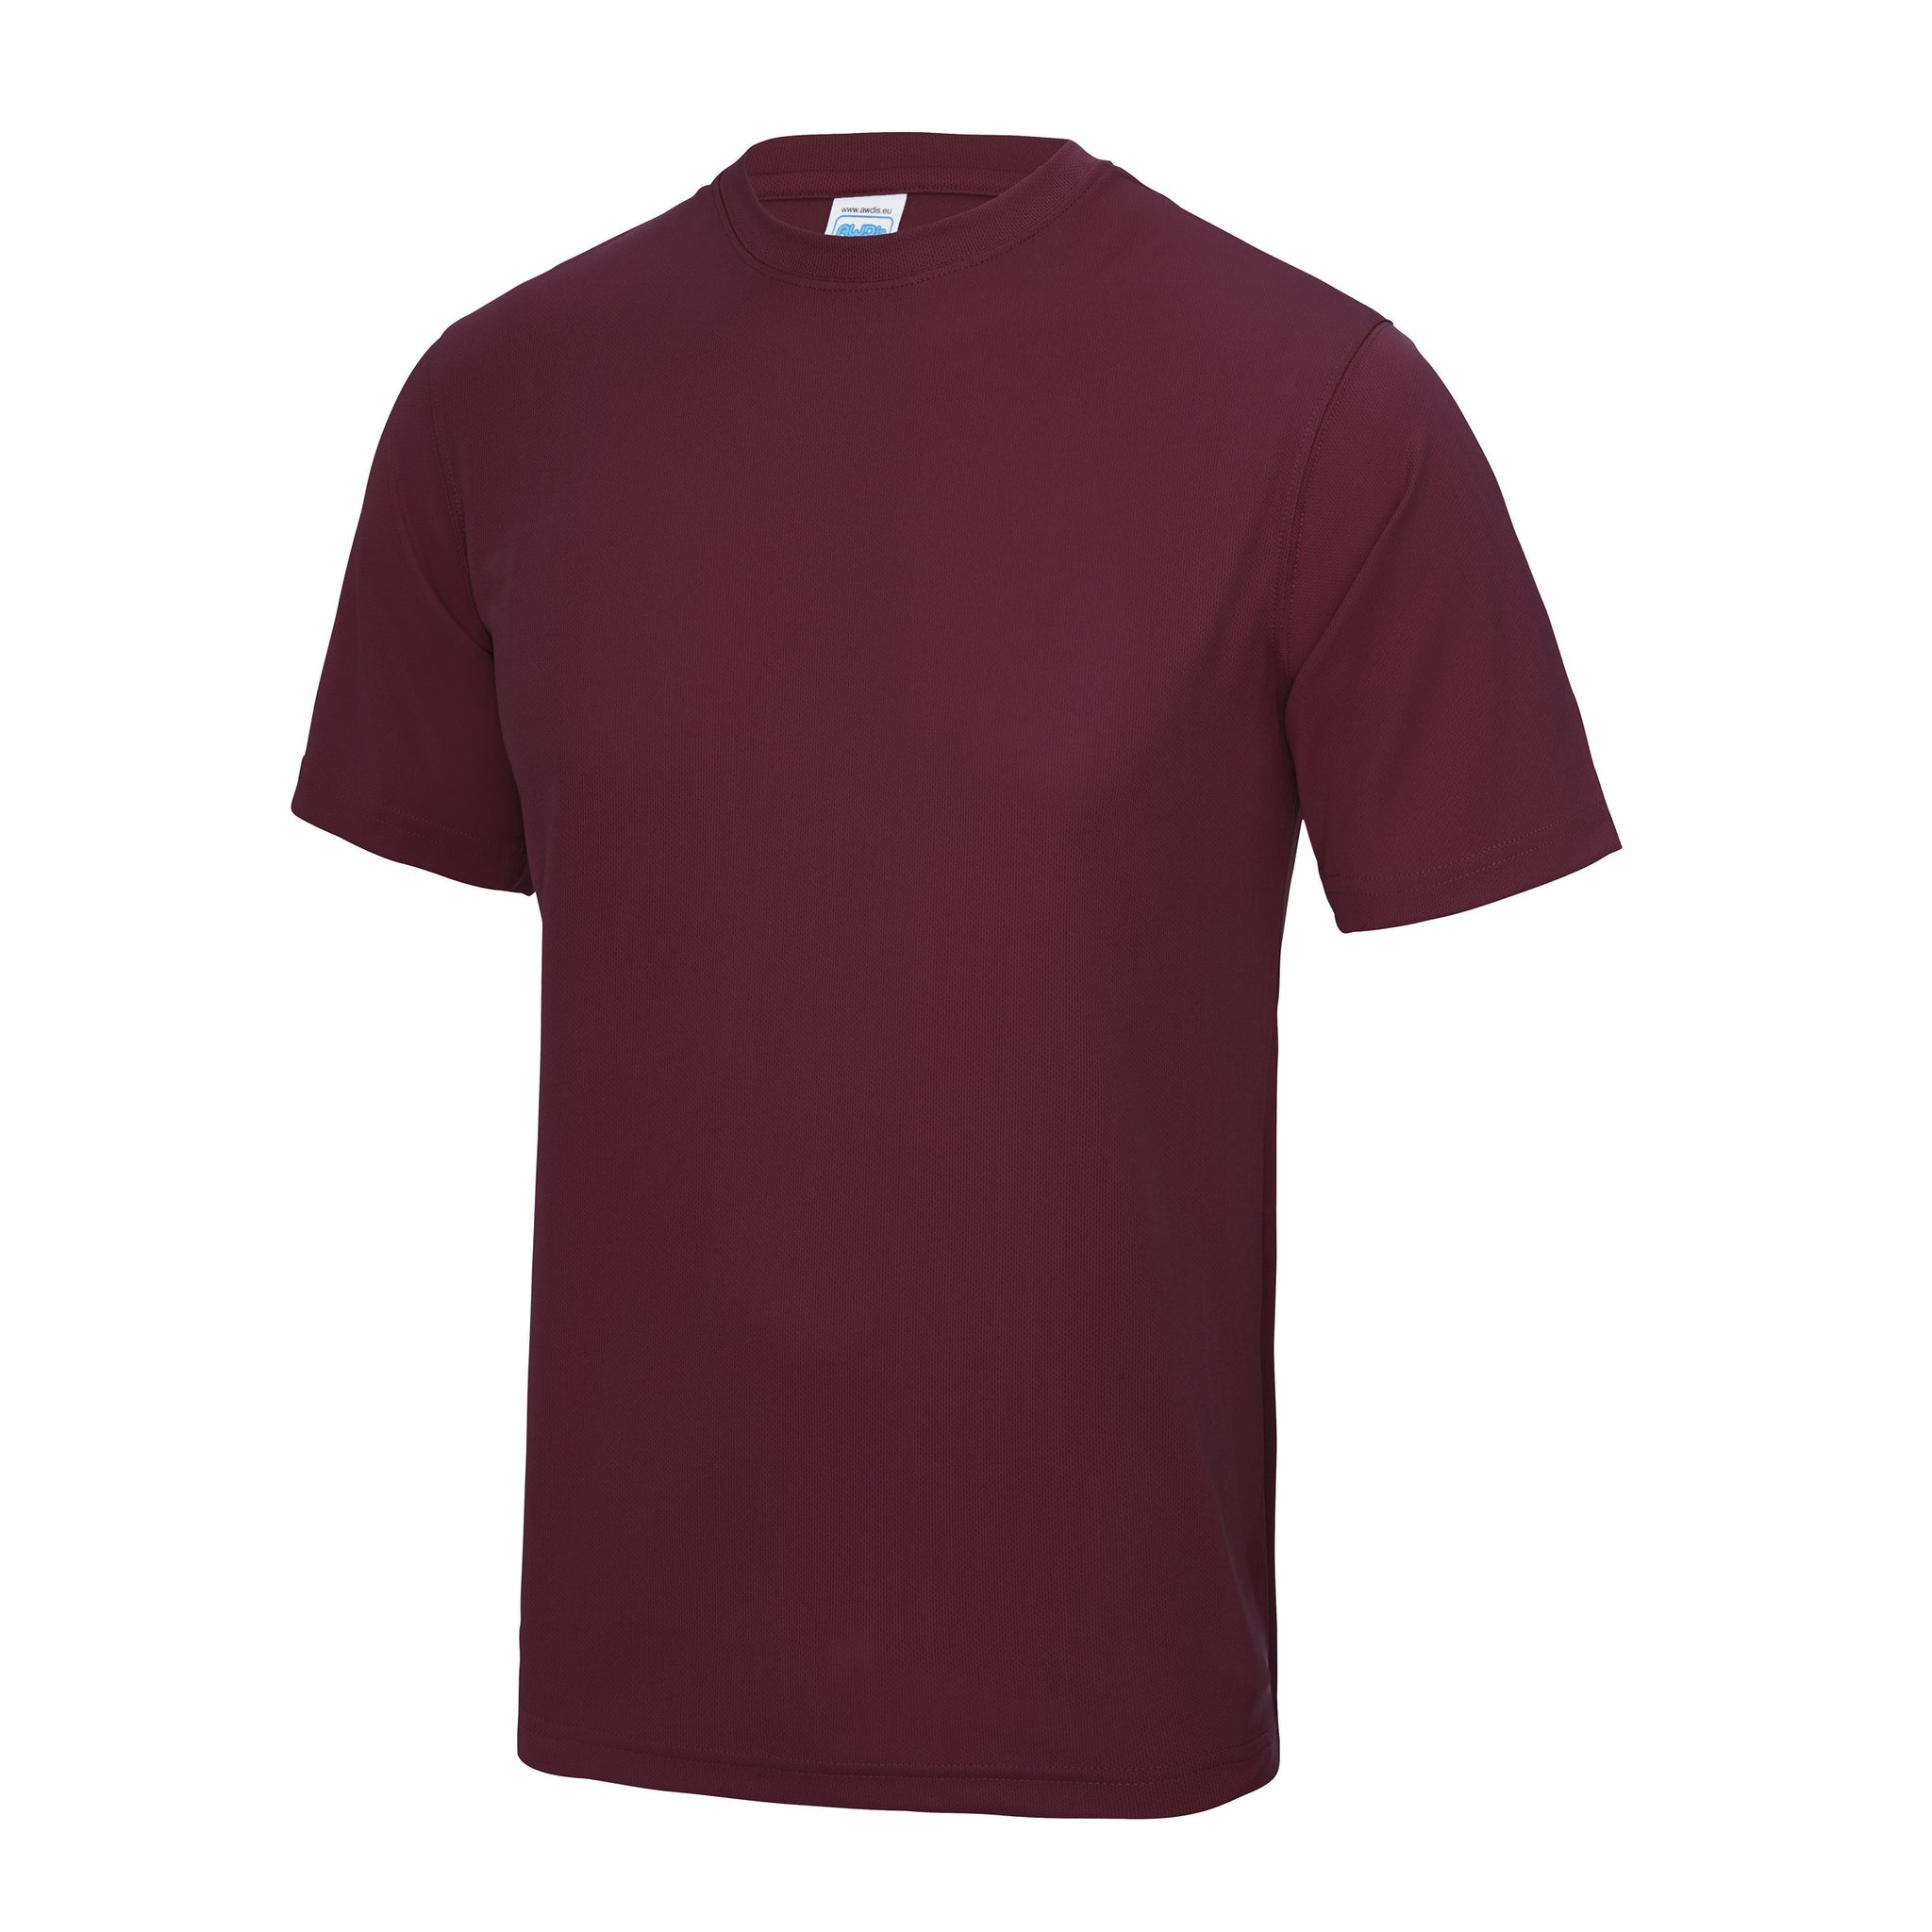 XS Burgundy Sports T shirt - choose logo